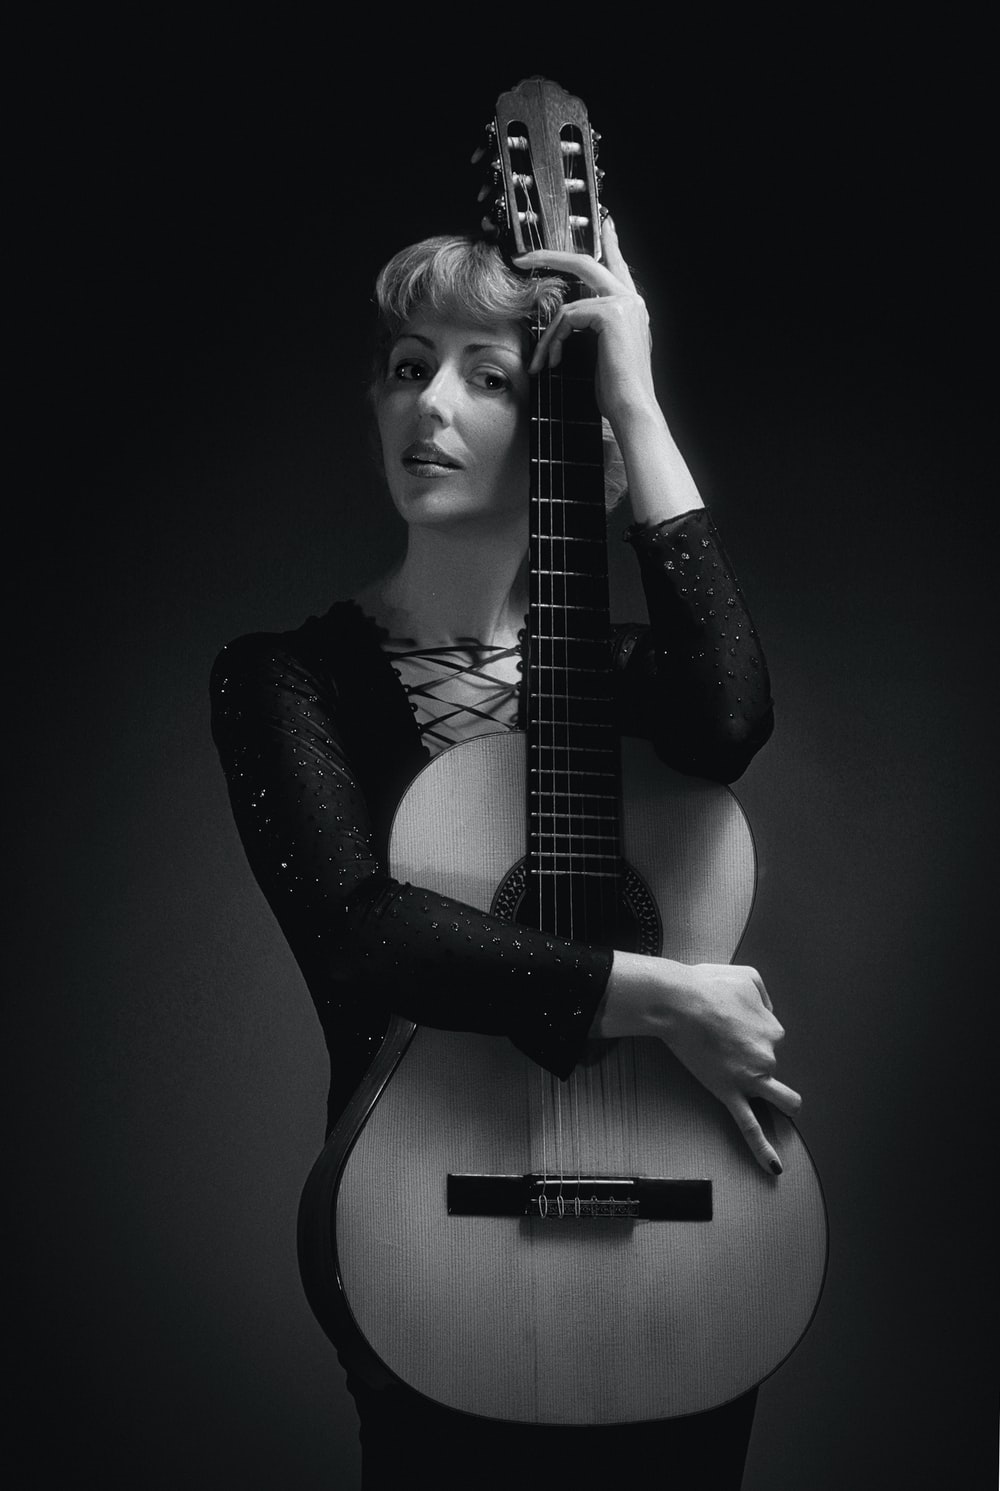 grayscale photography of woman holding guitar